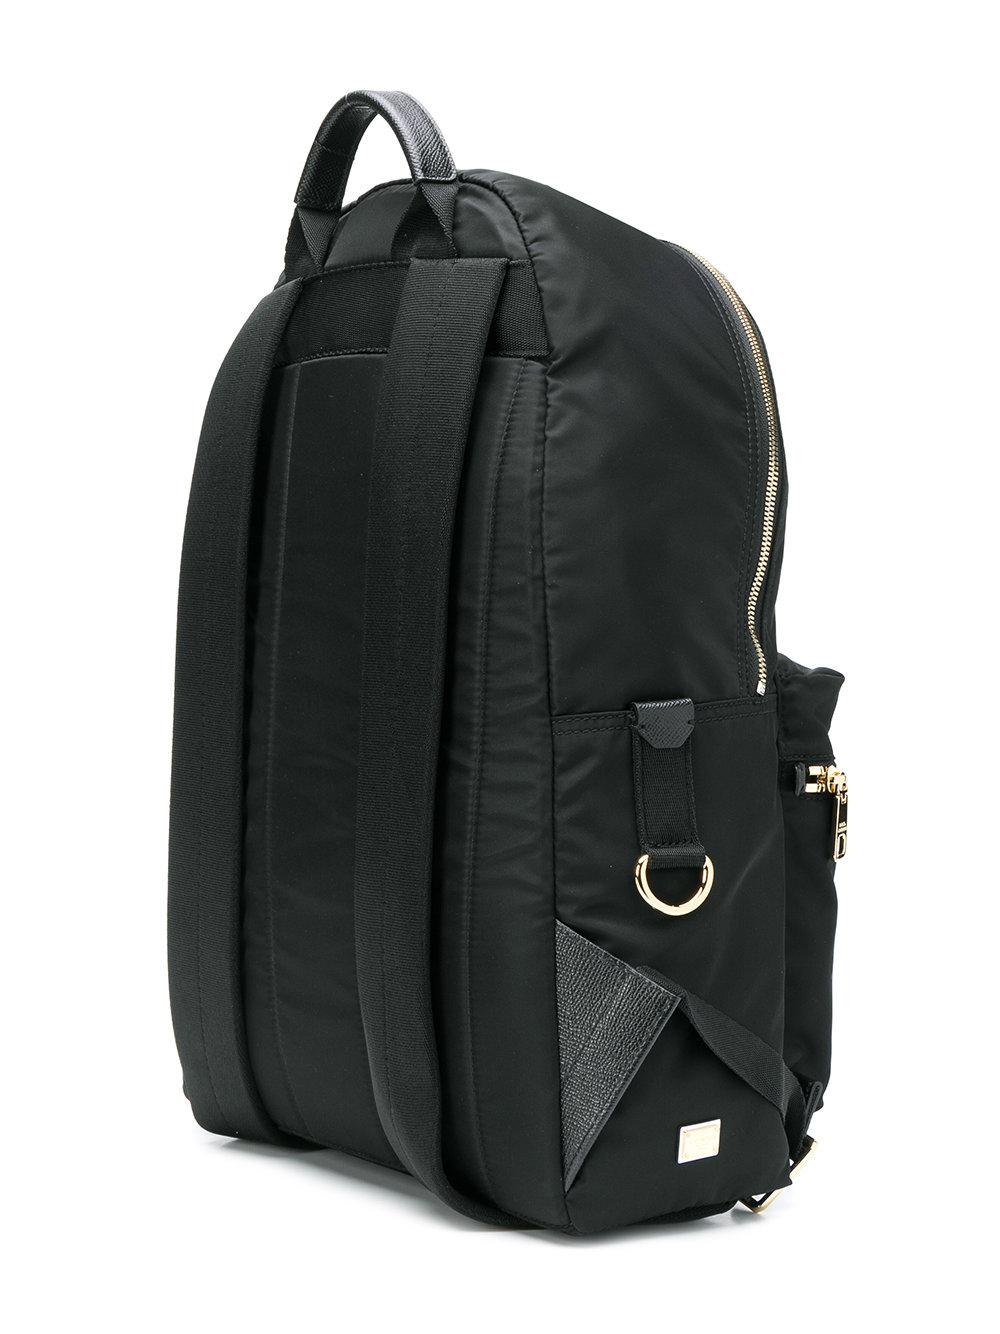 Dolce & Gabbana Synthetic Embellished Backpack in Black